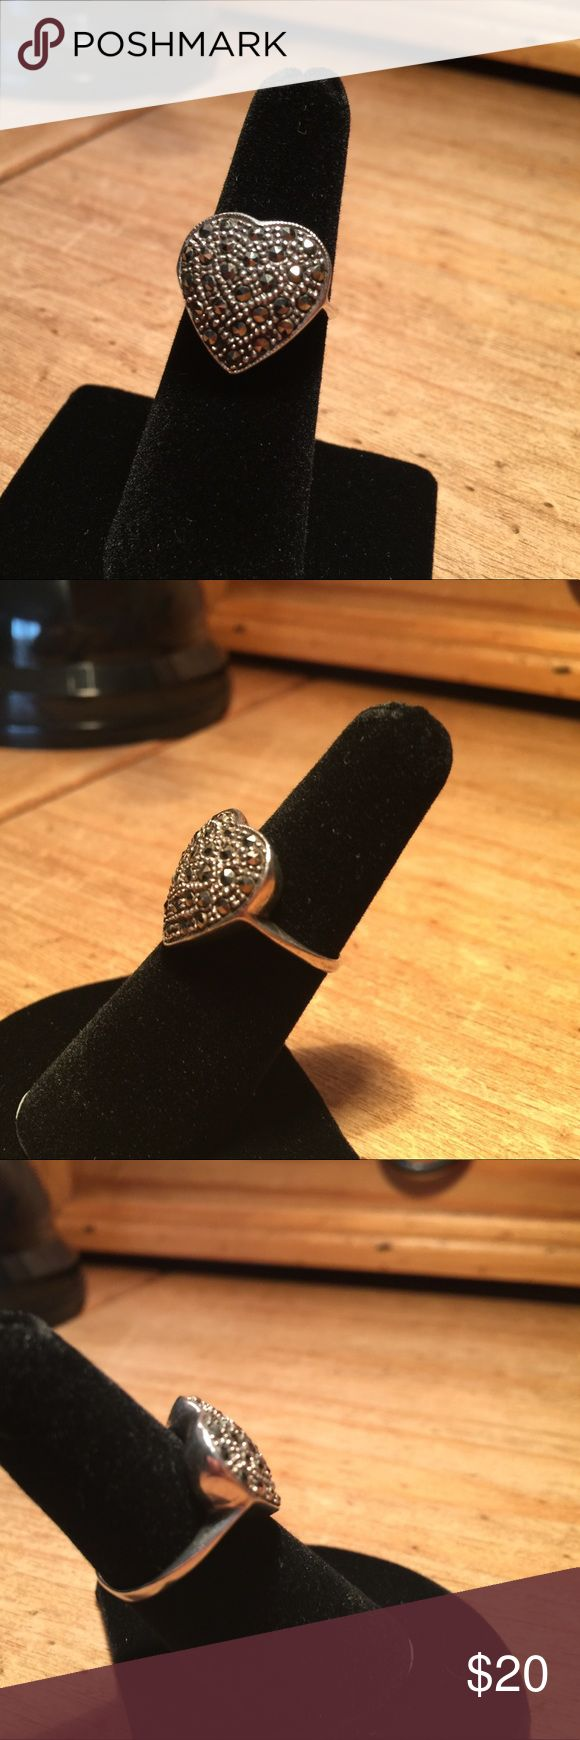 Judith Jack Heart ❤️ Ring Judith Jack Heart ❤️ Ring in Silver & Marcasite, Size 6.5 Beautiful! Judith Jack Jewelry Rings